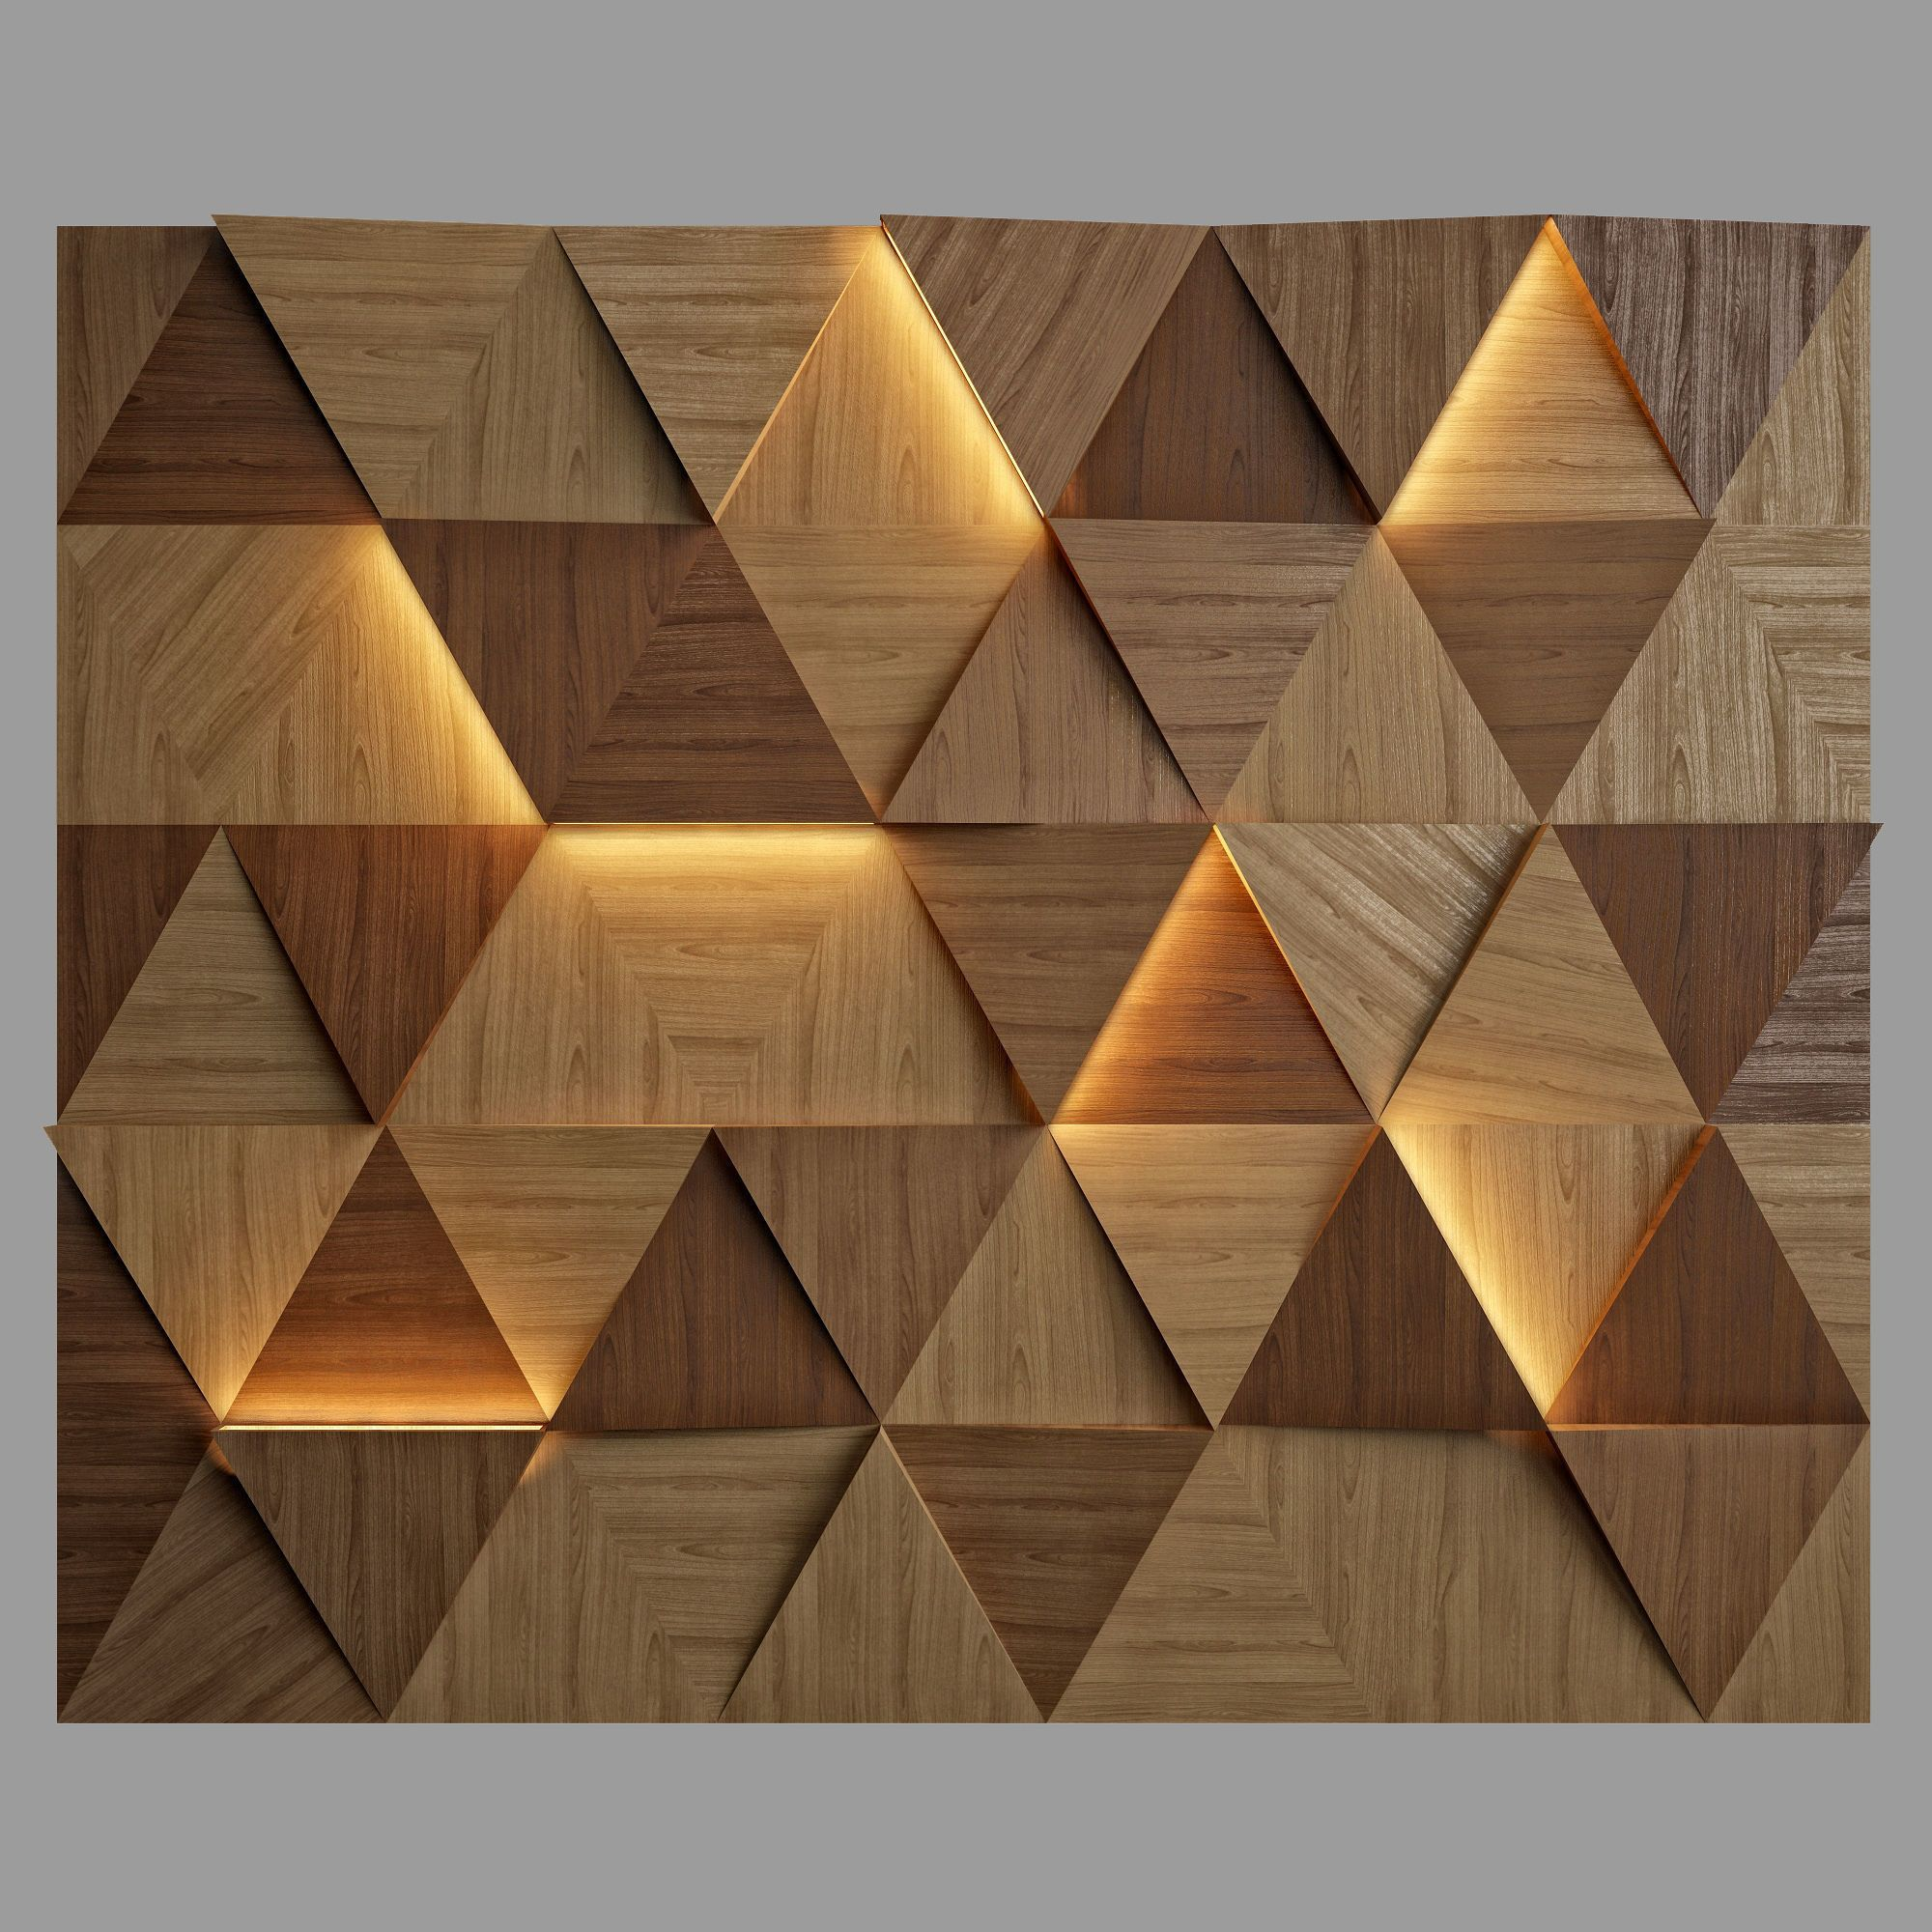 Wall Panel 7 3d Model Wooden Wall Design Wall Panel Design Wooden Wall Panels